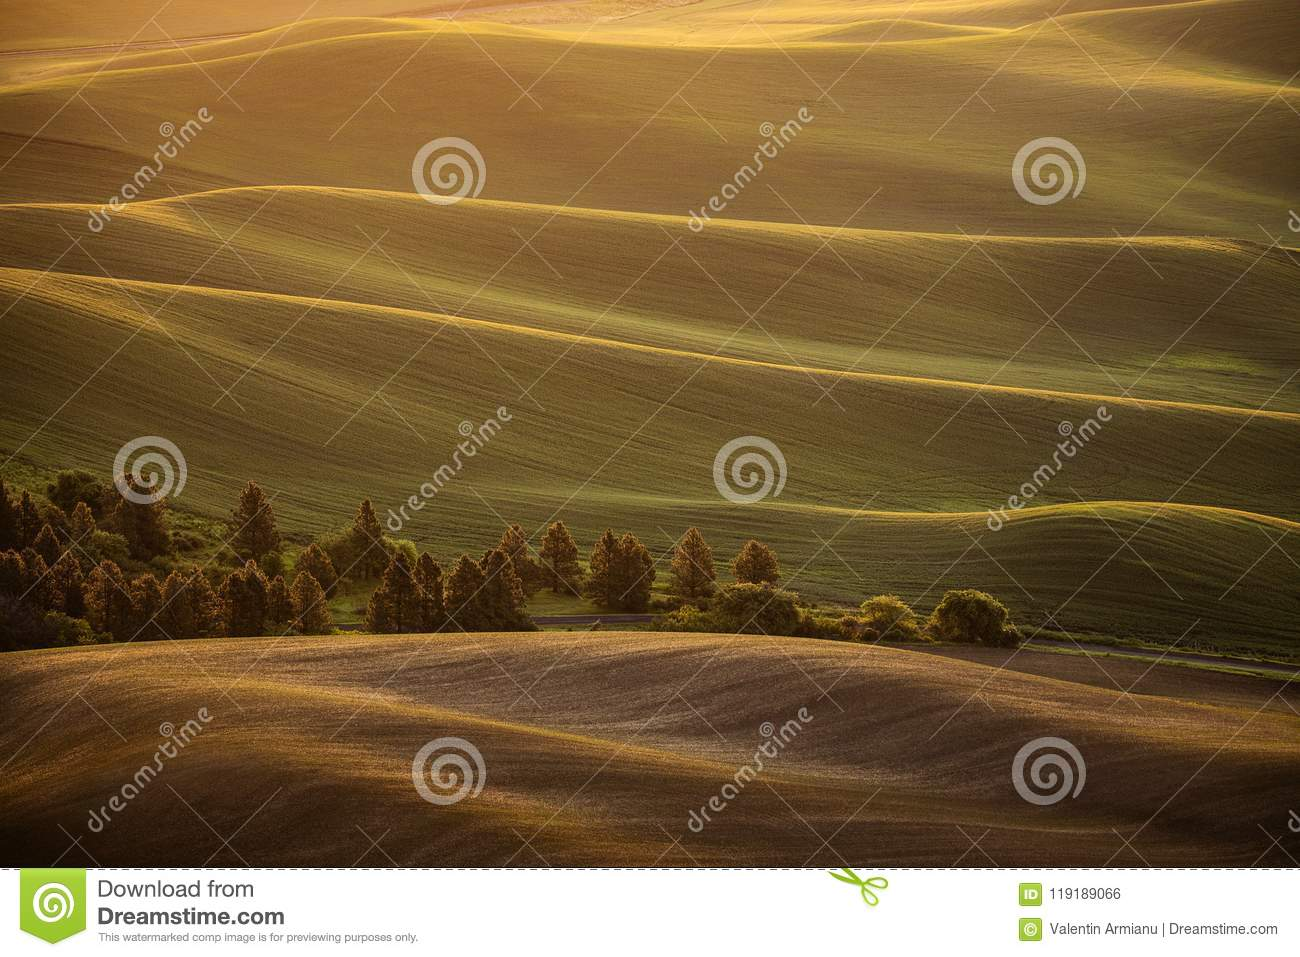 Sunrise over rolling country hills